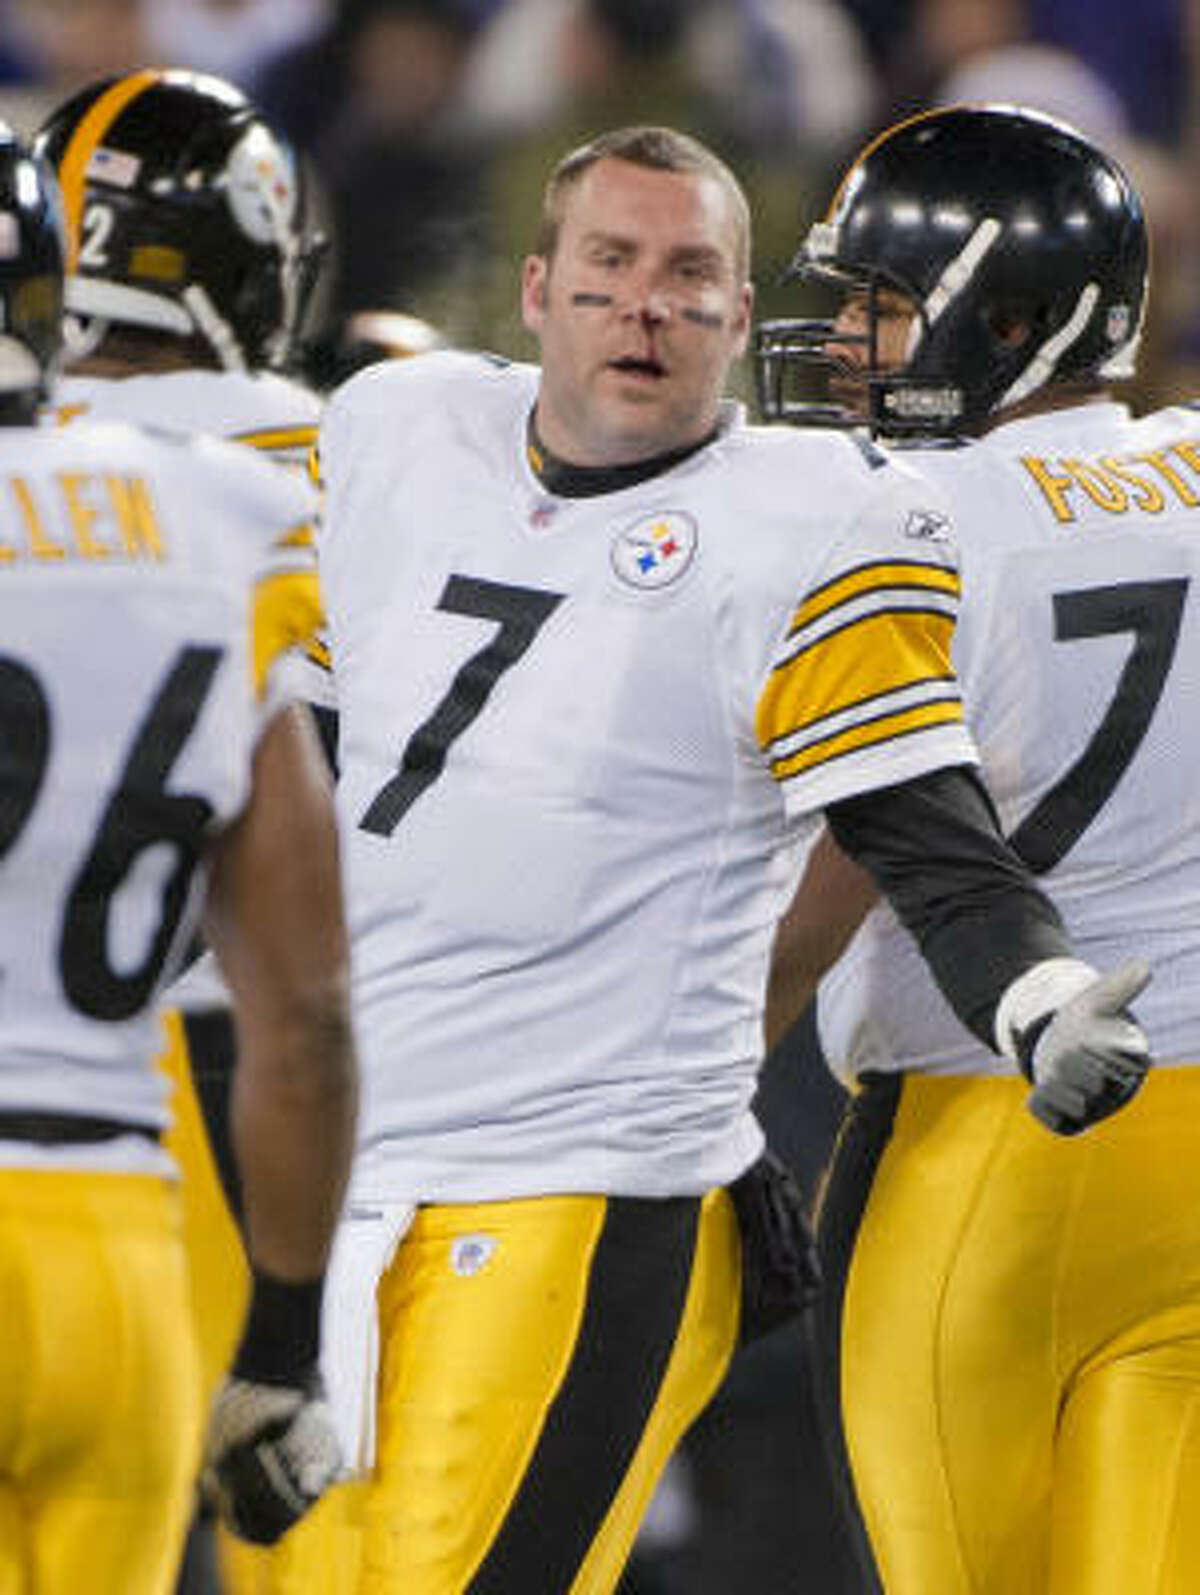 Pittsburgh Steelers quarterback Ben Roethlisberger suffered a broken nose in the victory Sunday night.